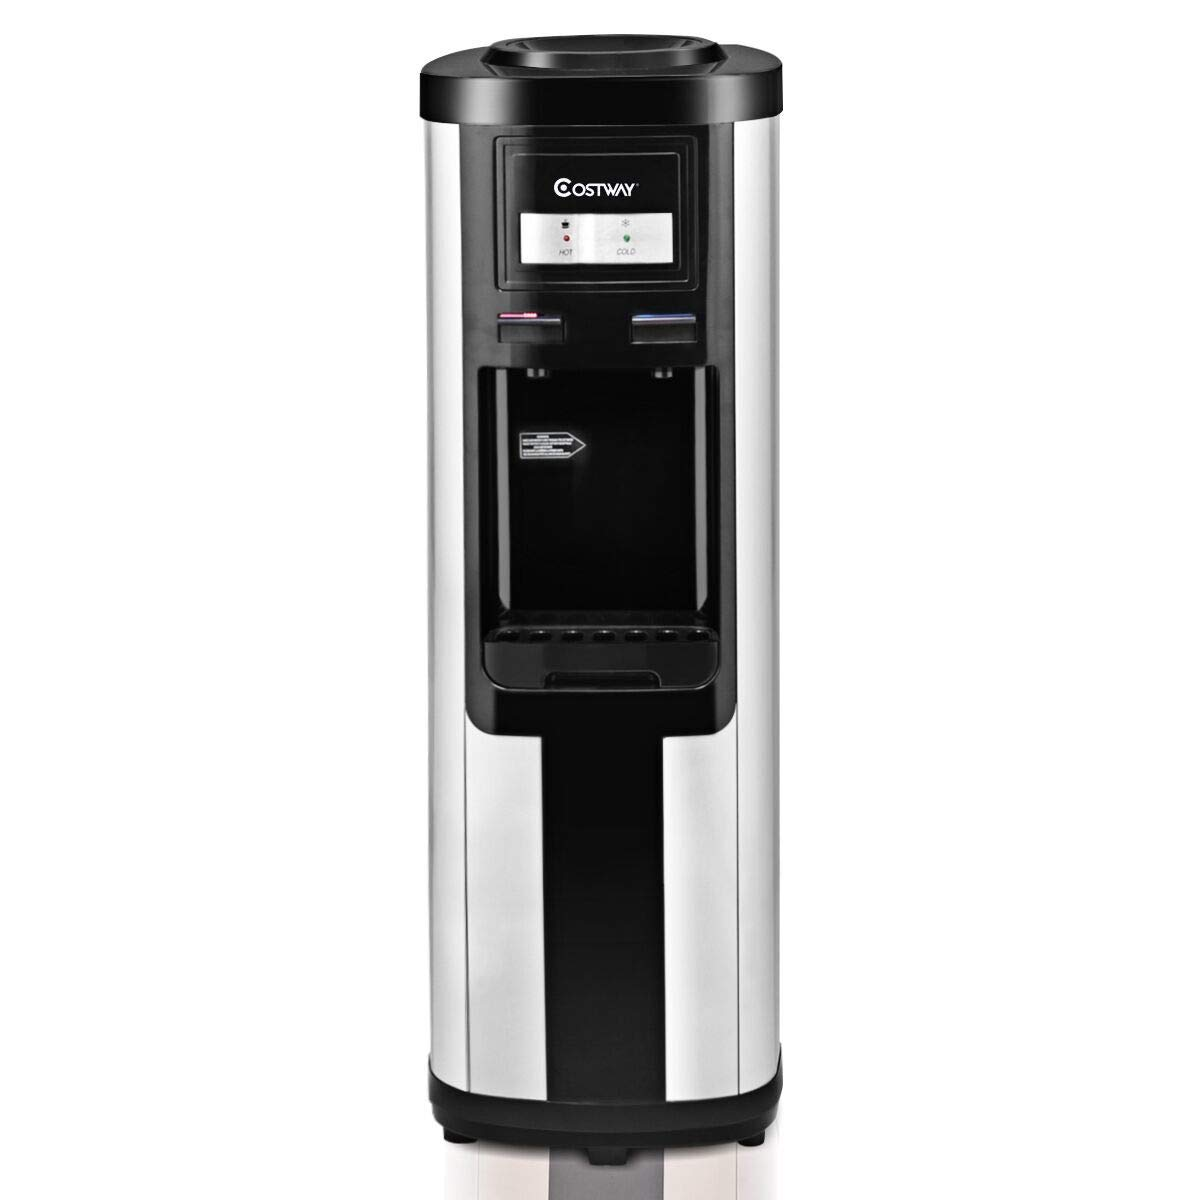 Costway 5 Gallon Water Cooler Dispenser Black Friday Deals